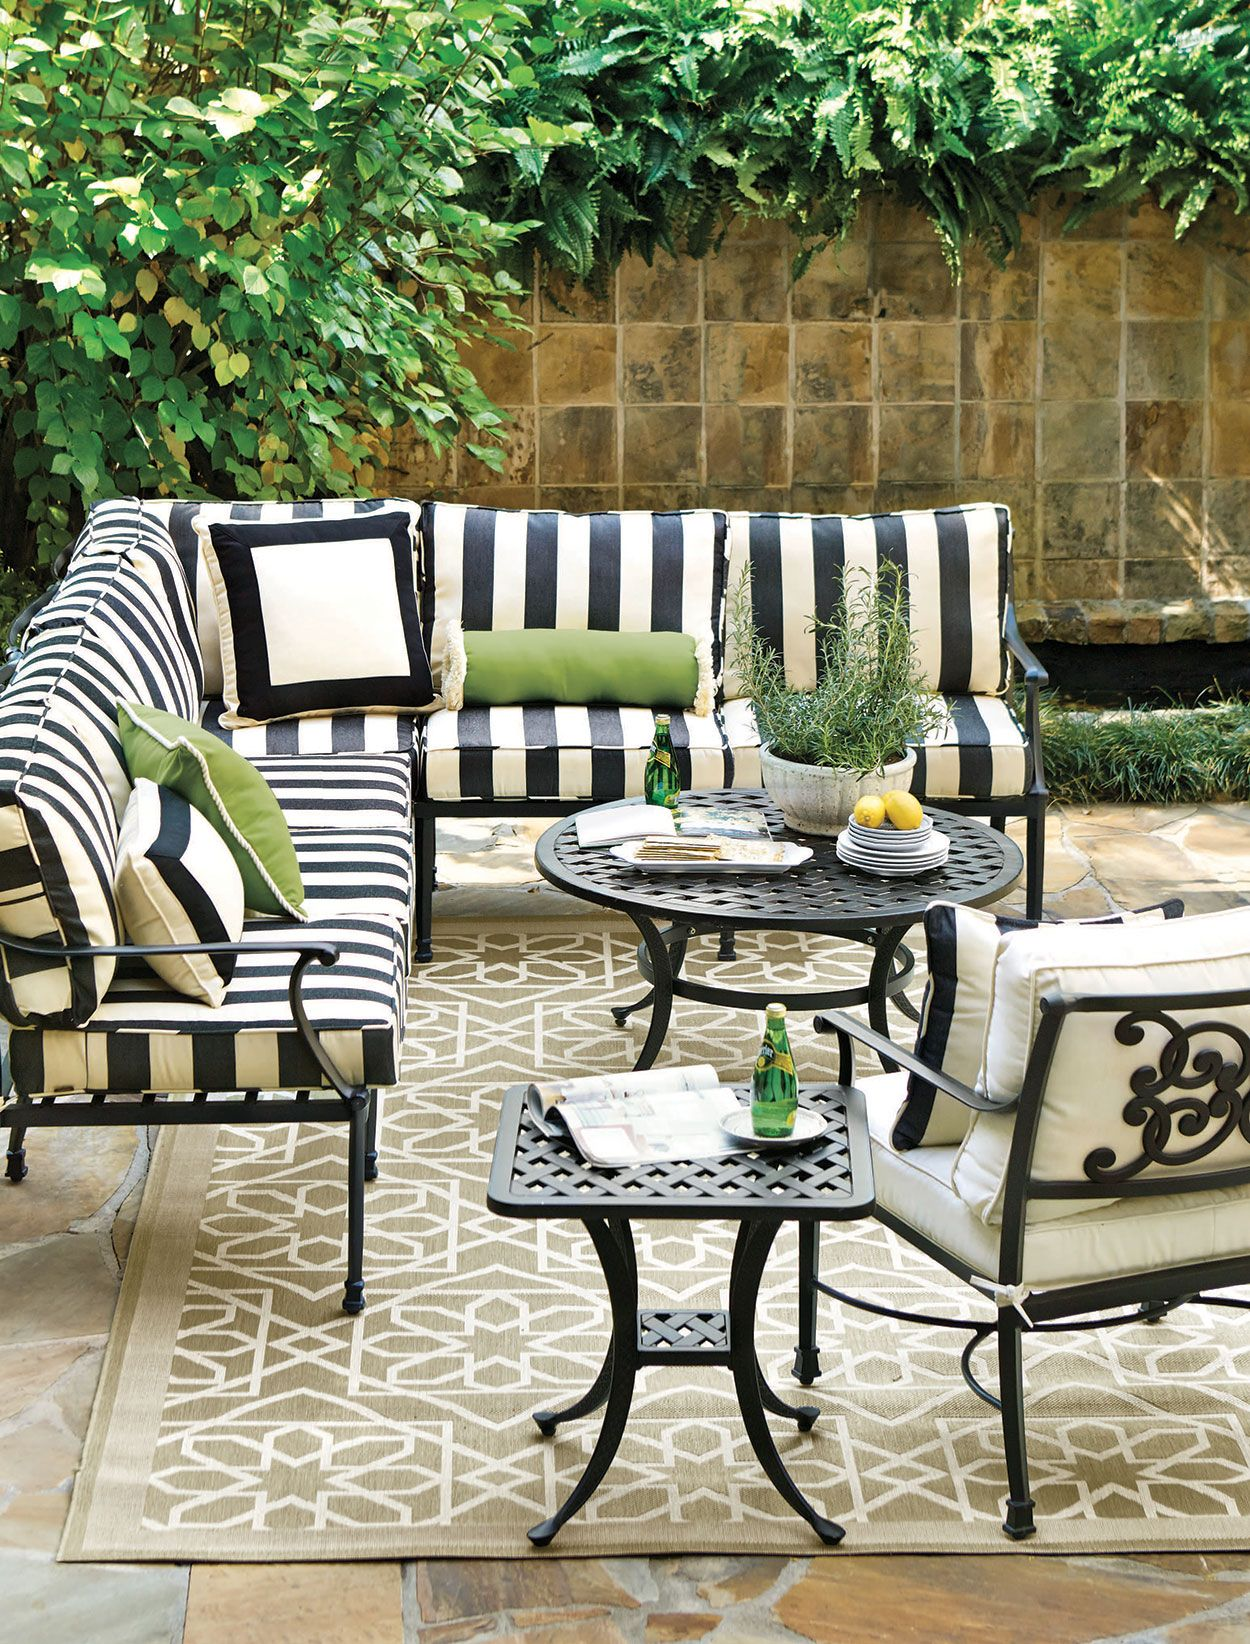 Outdoor spaces decorating ideas | Outdoor rooms, Patio ... on Black And White Patio Ideas id=38475